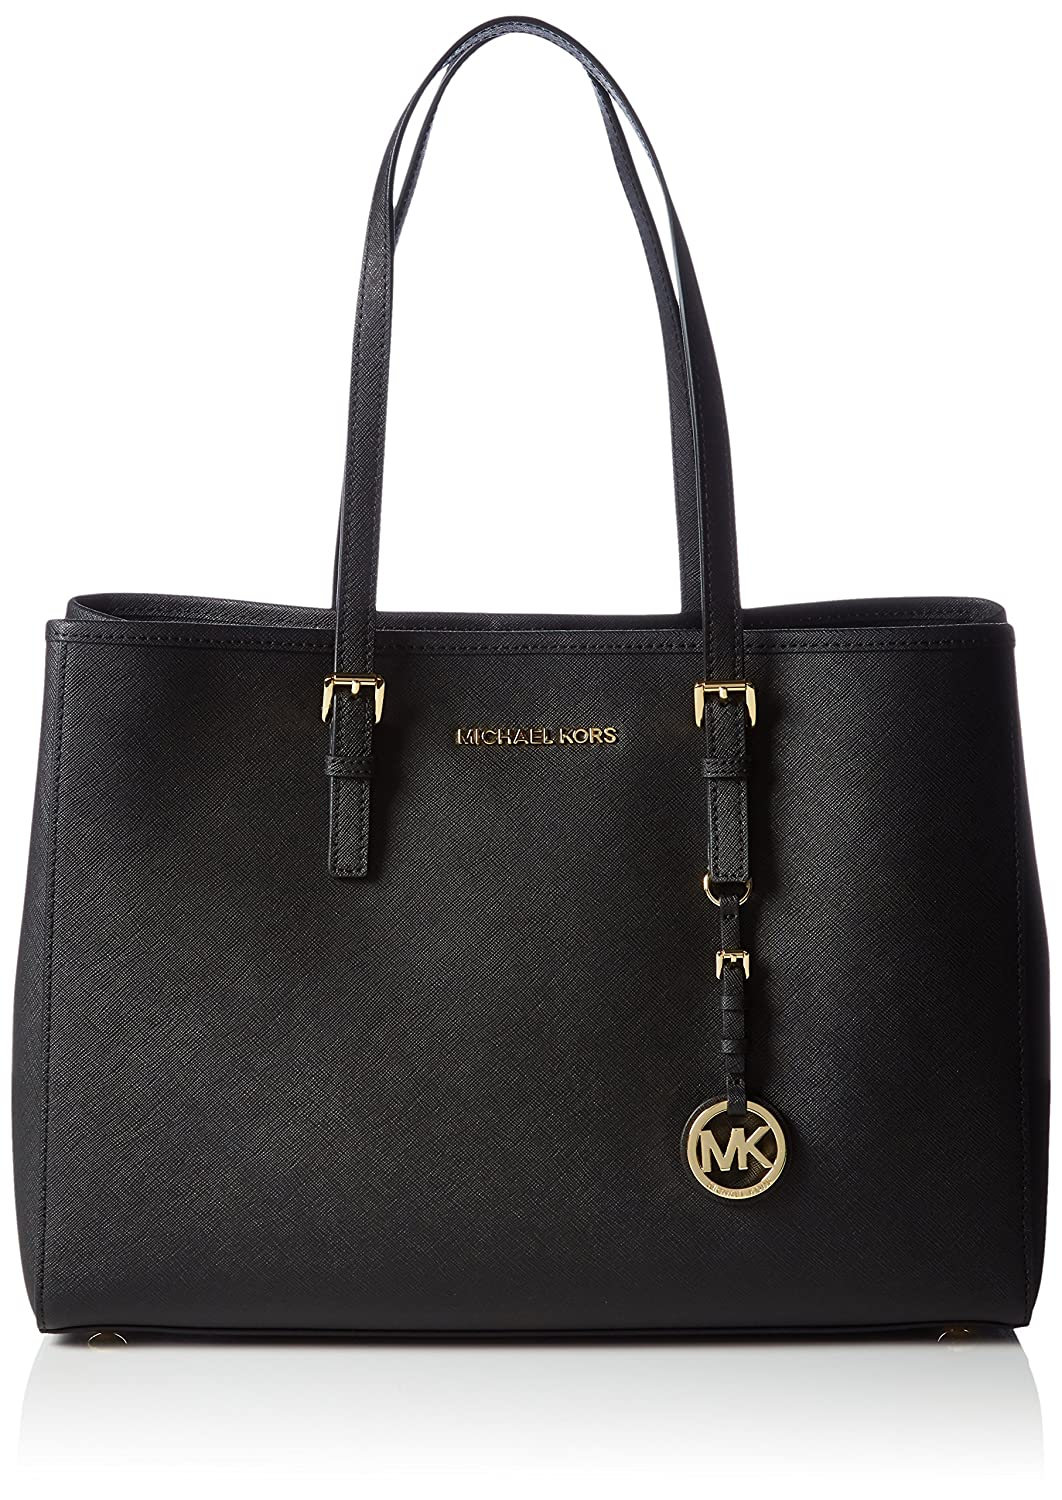 Michael Kors Womens Jet Set Travel Tote Black  Amazon.co.uk  Shoes   Bags 42176b5139